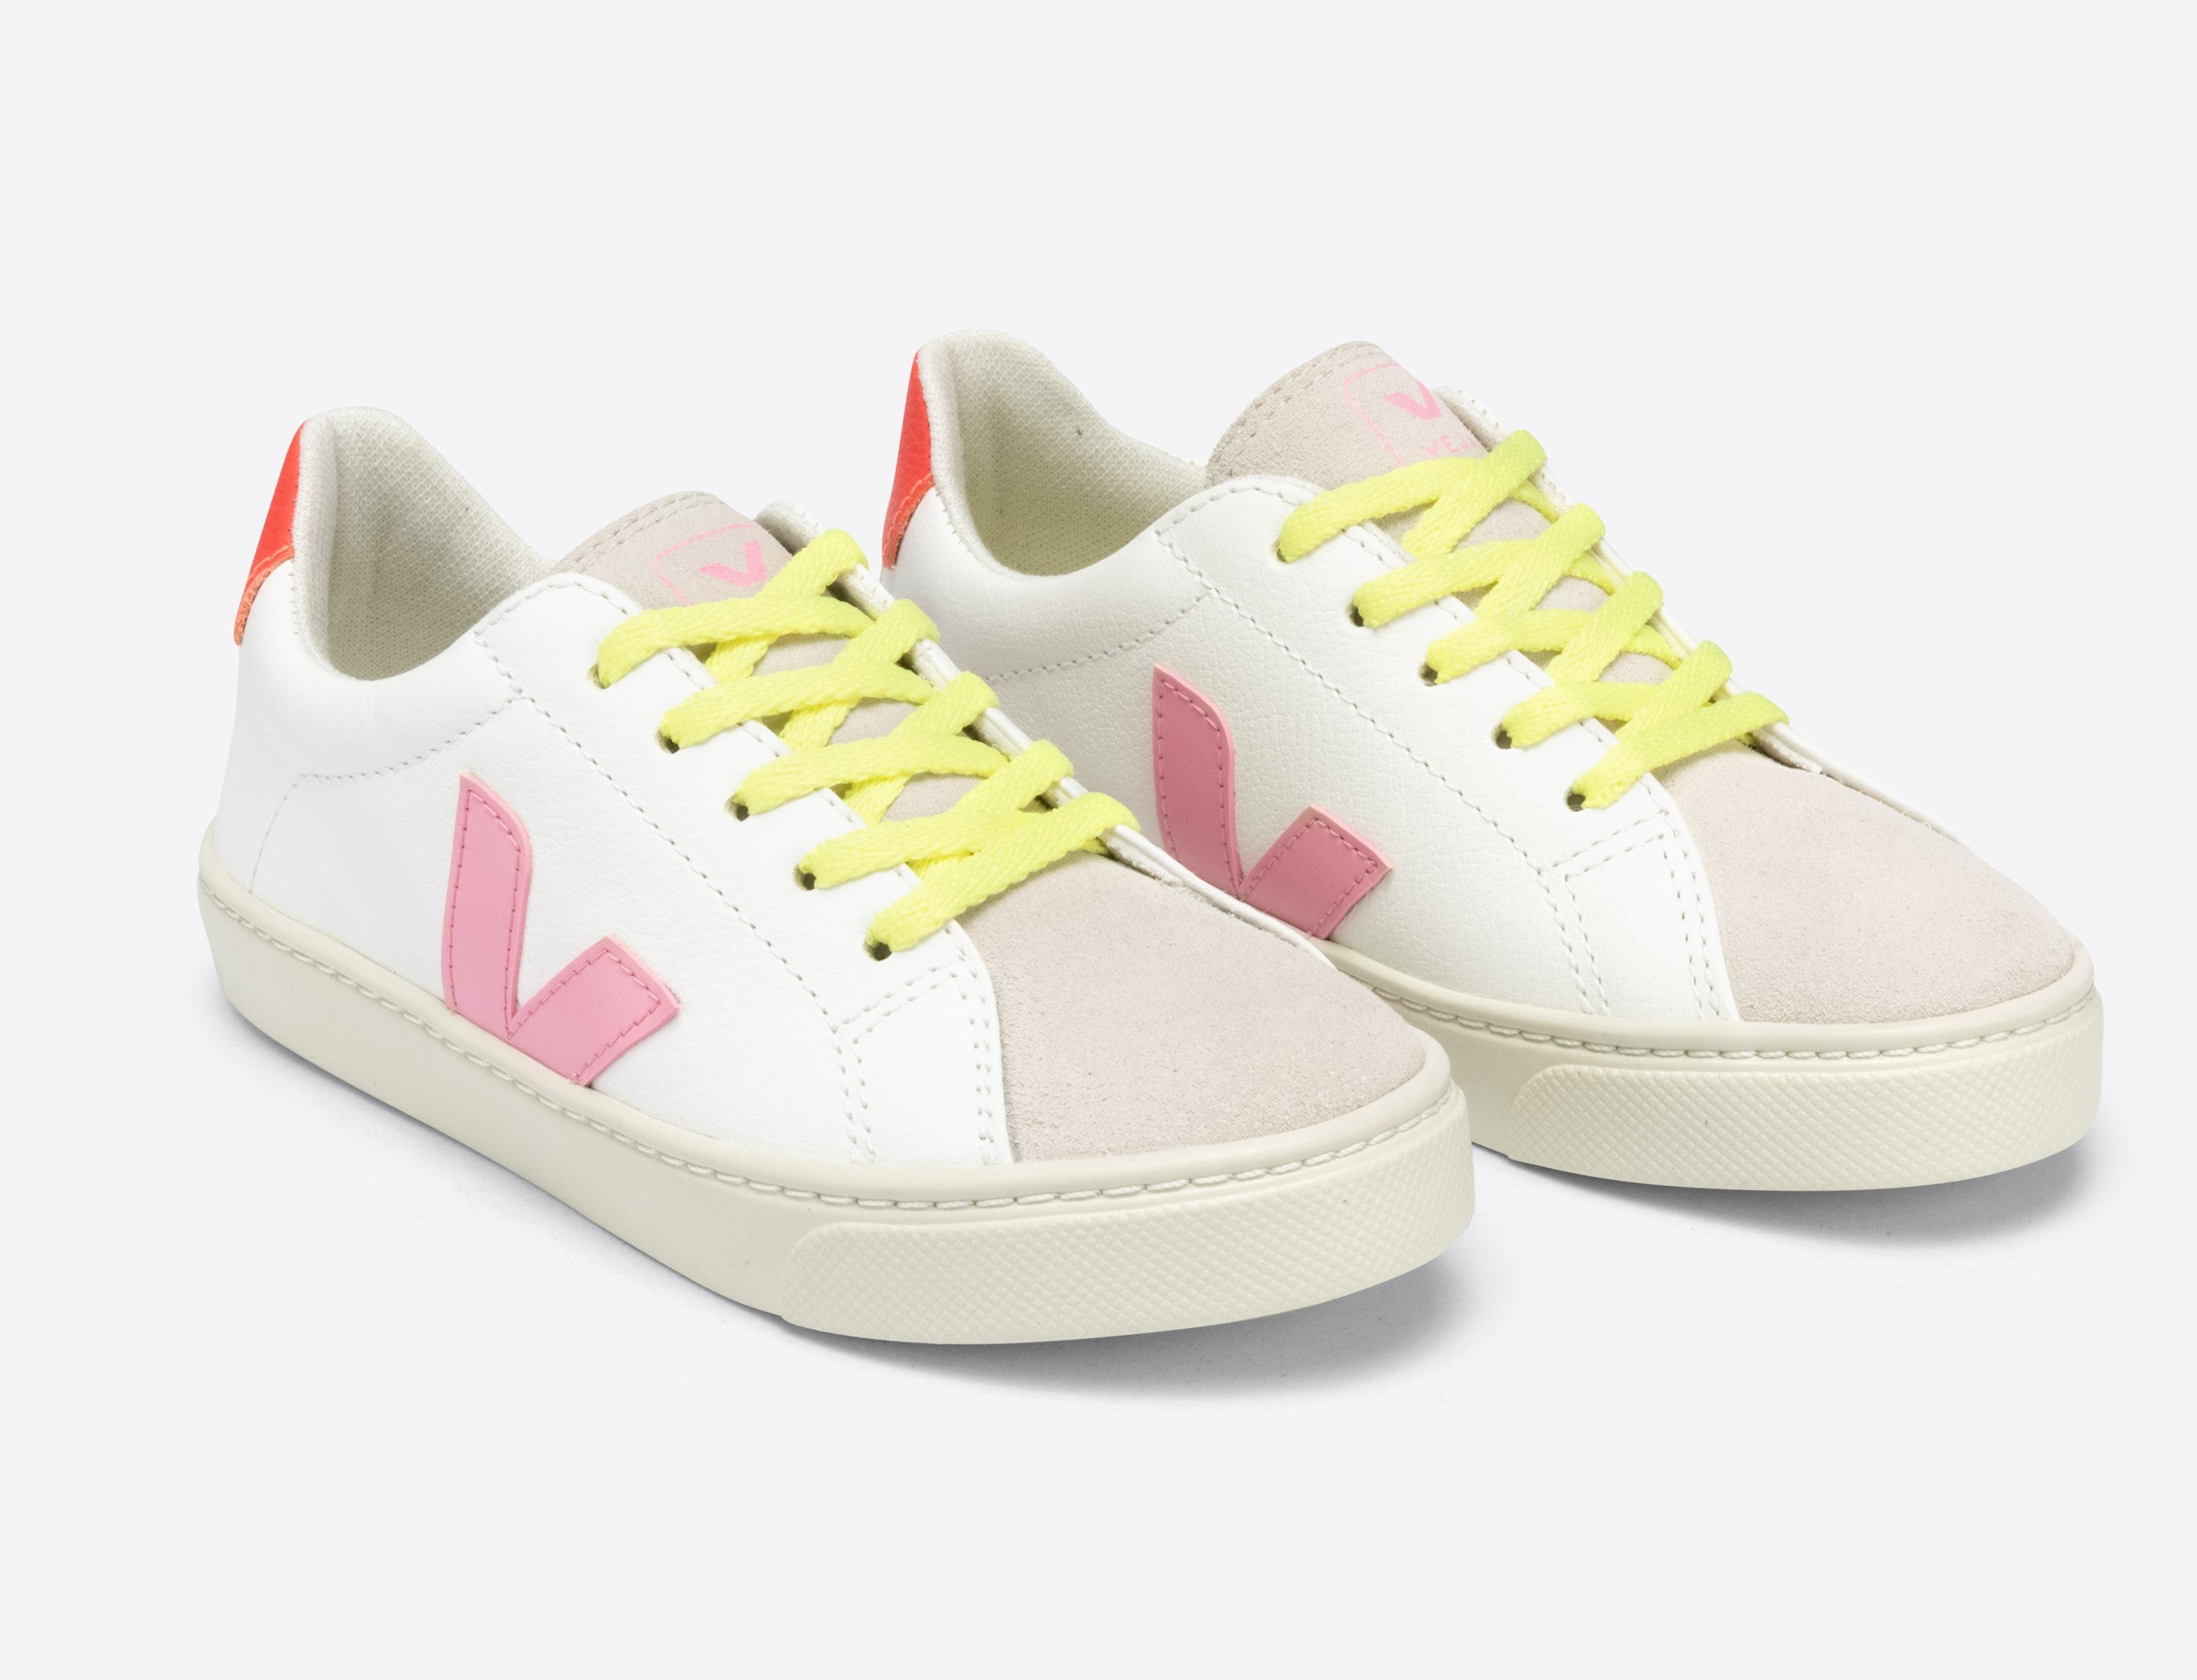 Veja White Lace Sneaker with Pink V and Orange Trim